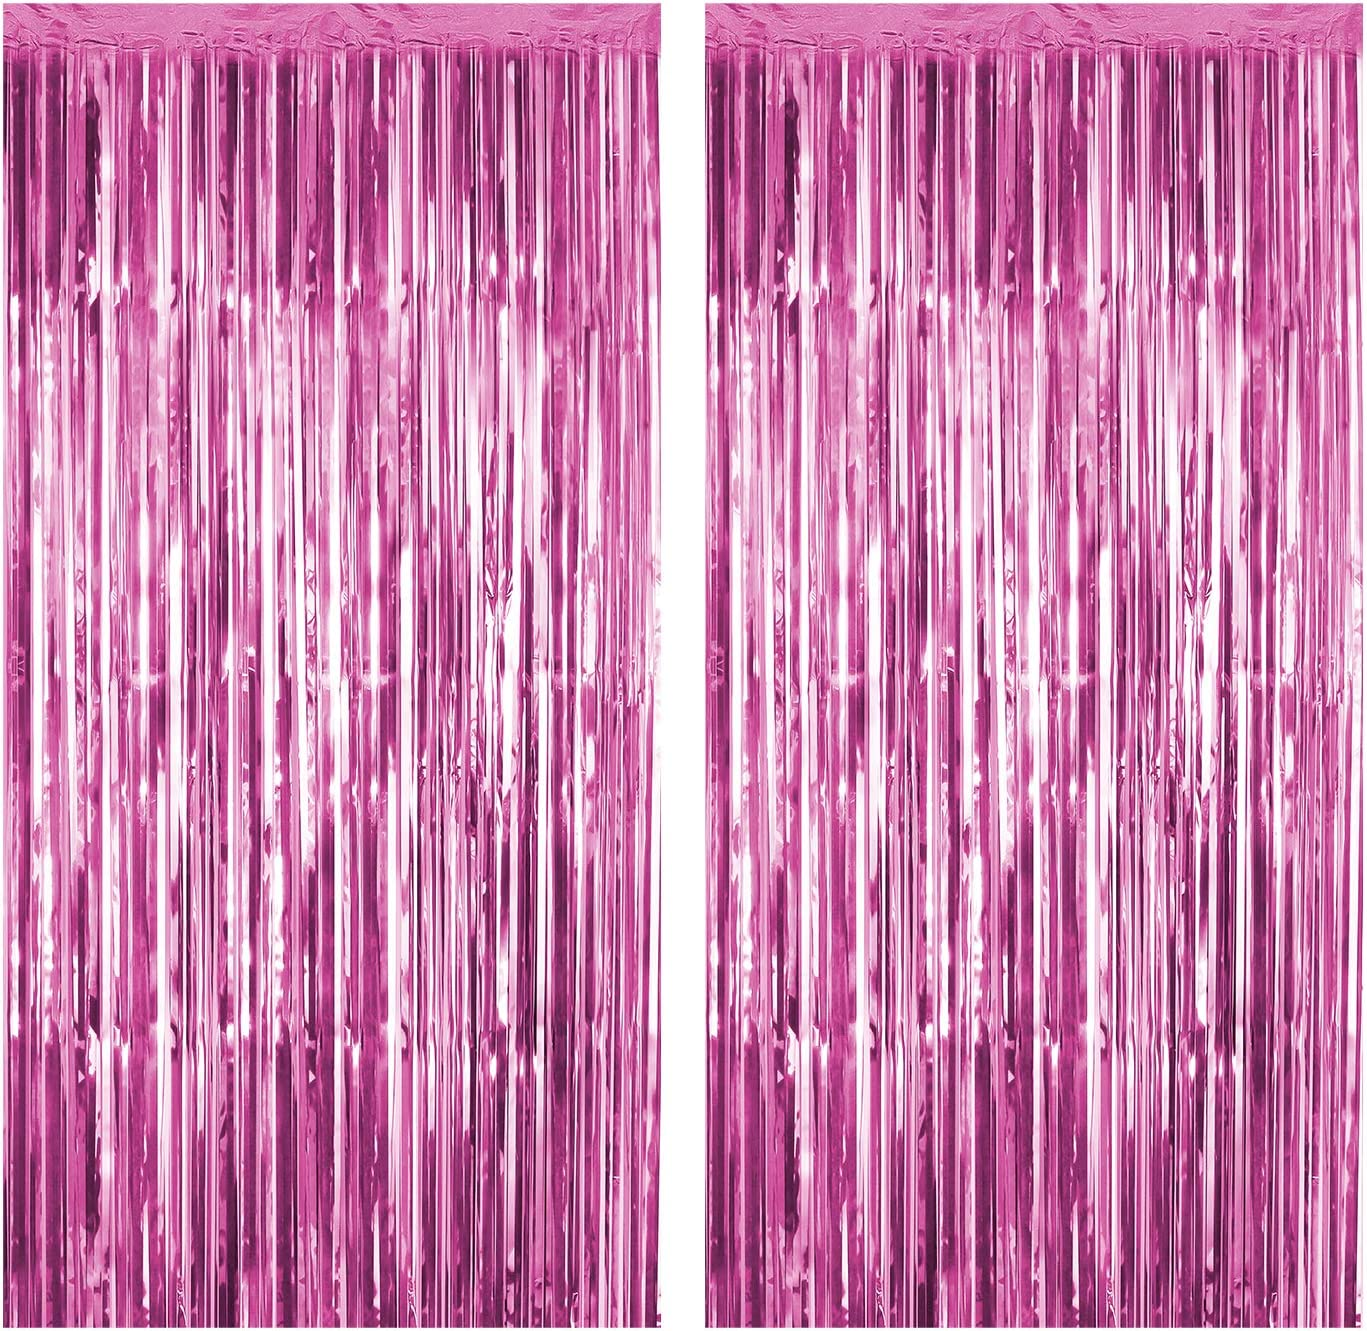 Foil Fringe Curtains Metallic Tinsel Mylar Curtain for Party Photo Backdrop Wedding Decor (Pink, 2-Pack)